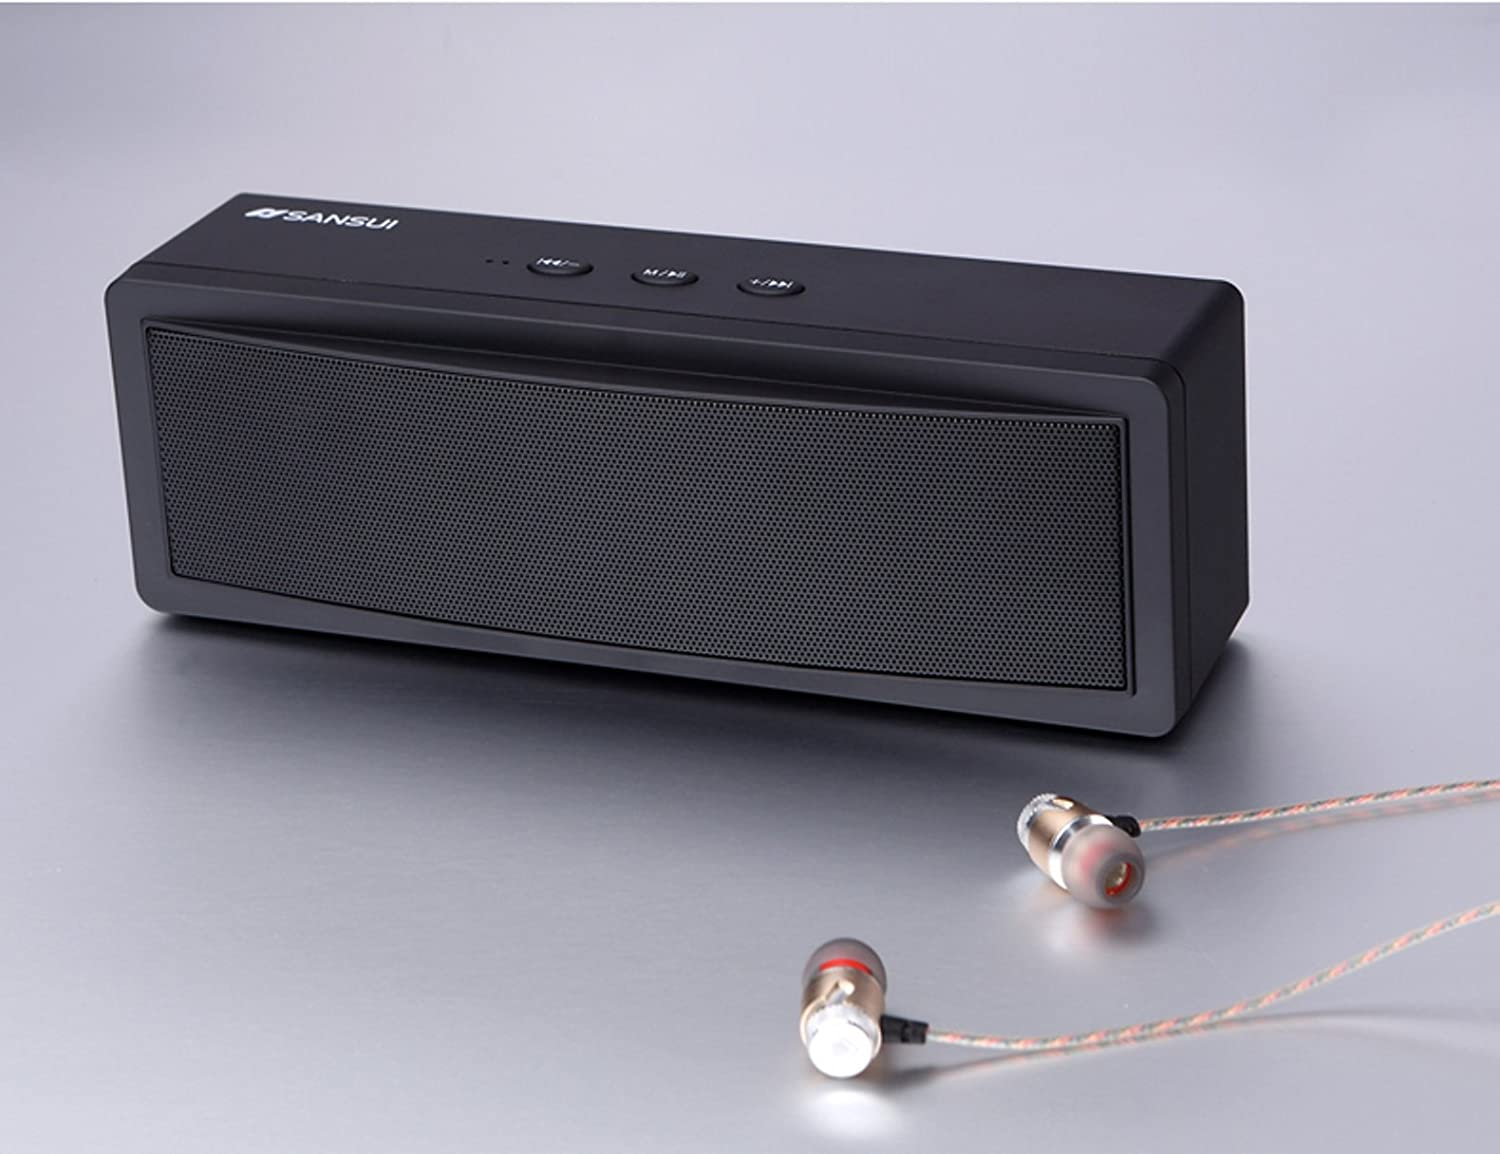 Portable Mobile Wireless Bluetooth Speaker Black 2x5w Stereo Audio Amplifier Based Ta7227 Circuit Diagram Home Theater